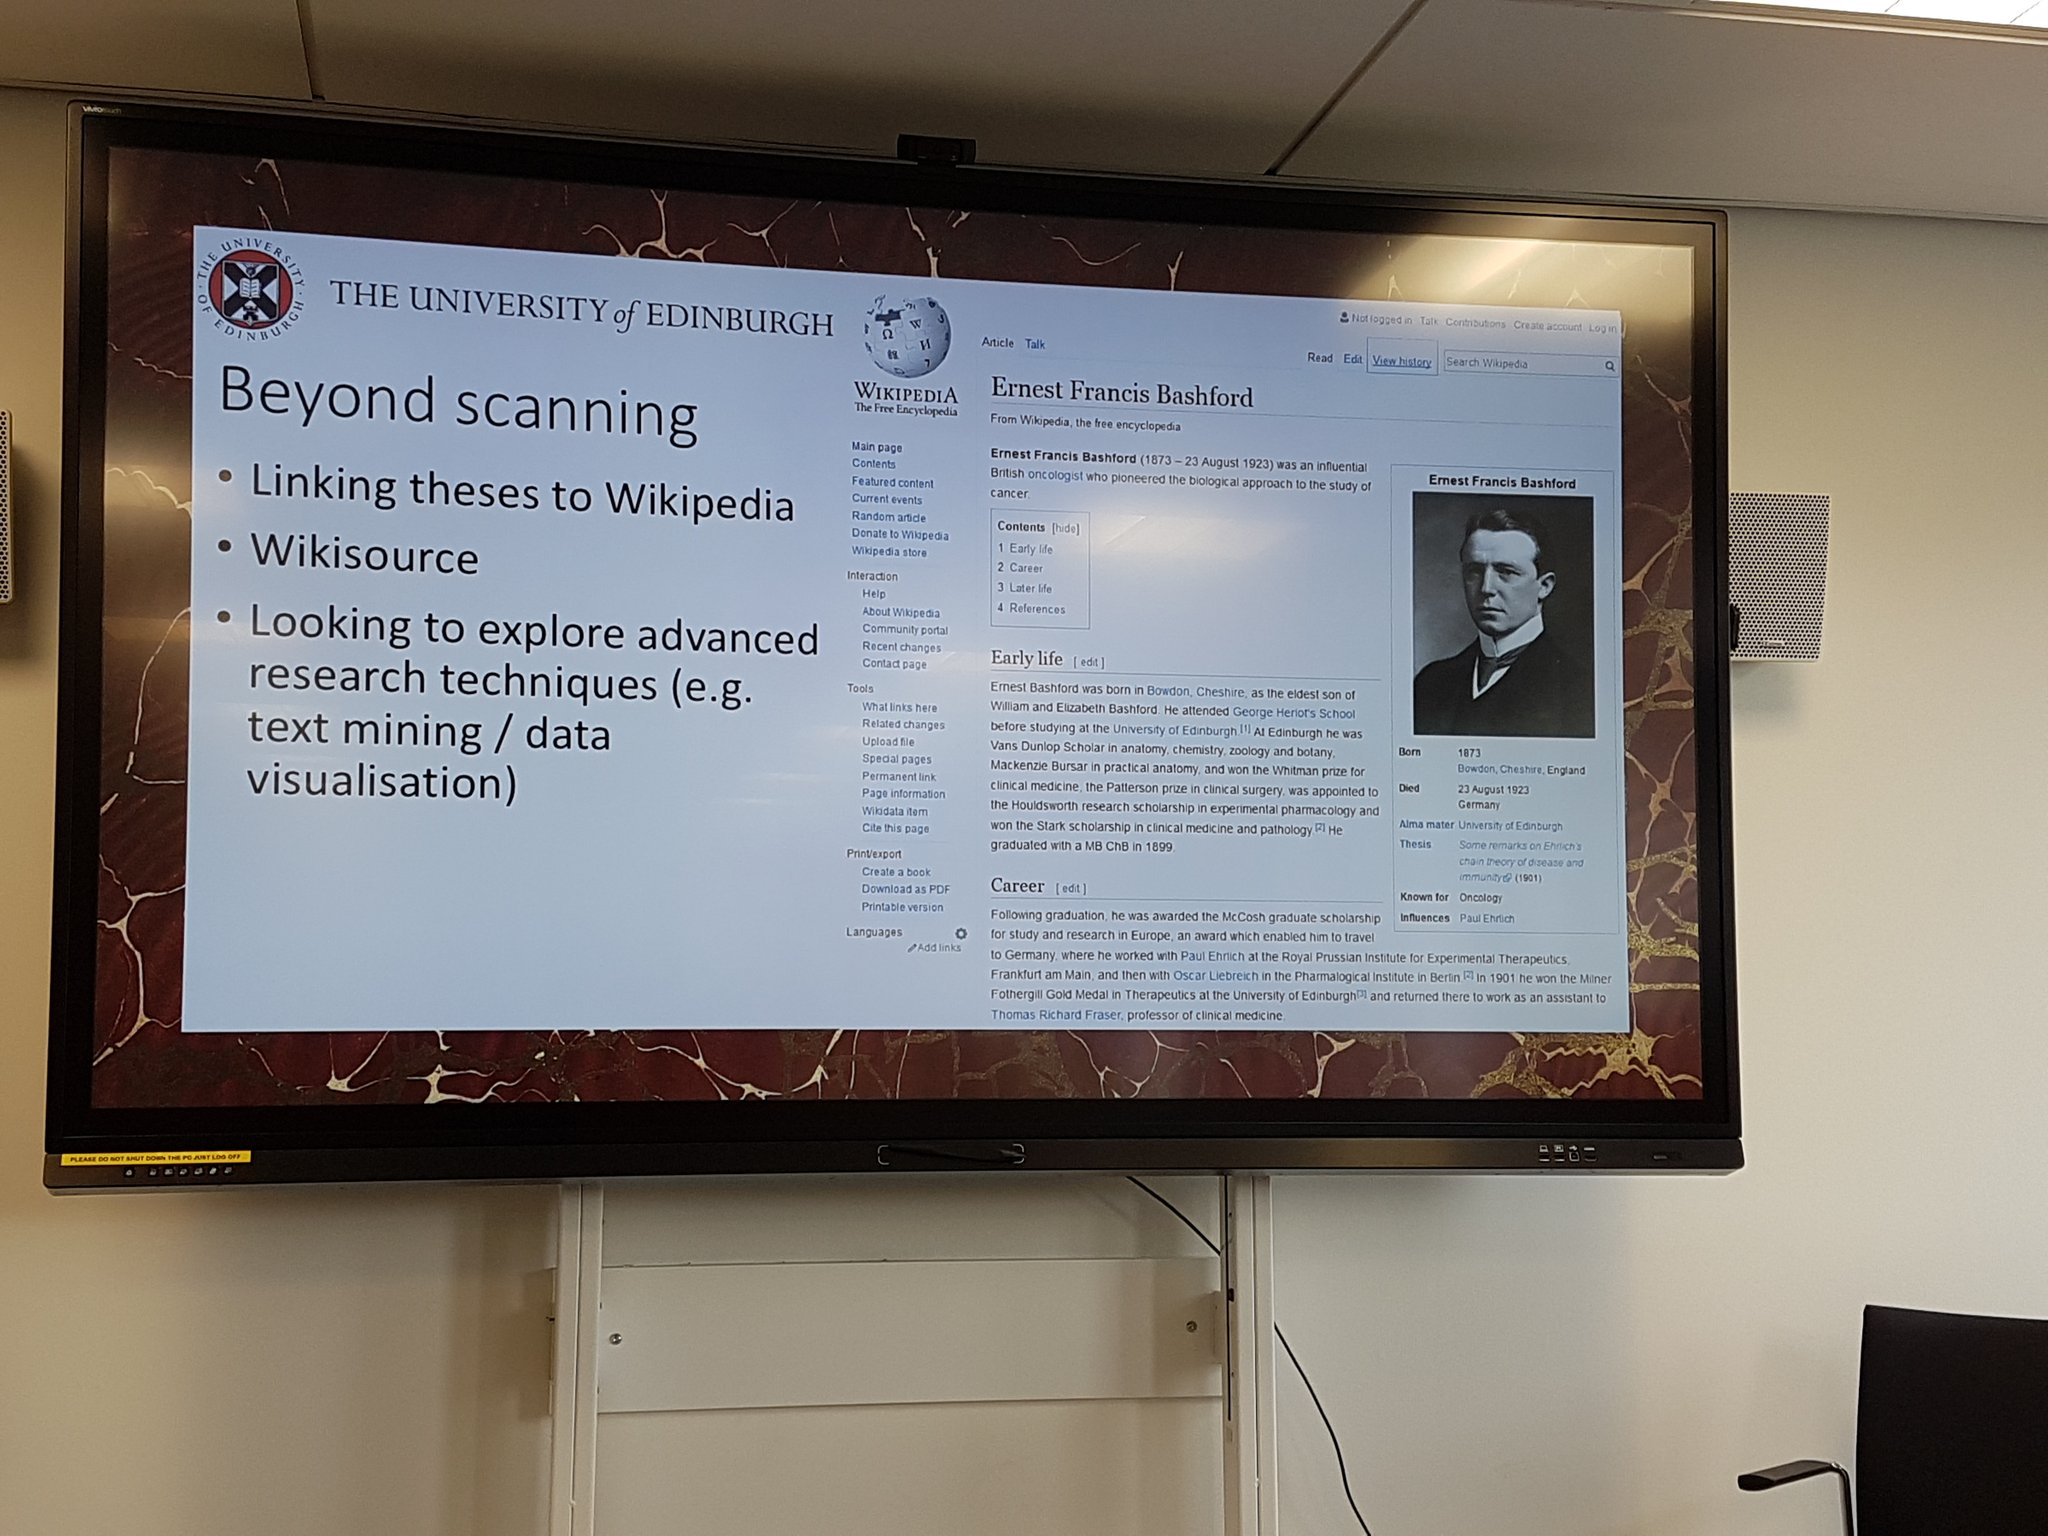 Knowledge is most useful when it is used; not just static but engaged with, built upon. Linking to notable PhD theses from Wikipedia #UoEOKN https://t.co/R1qd05Zs2o